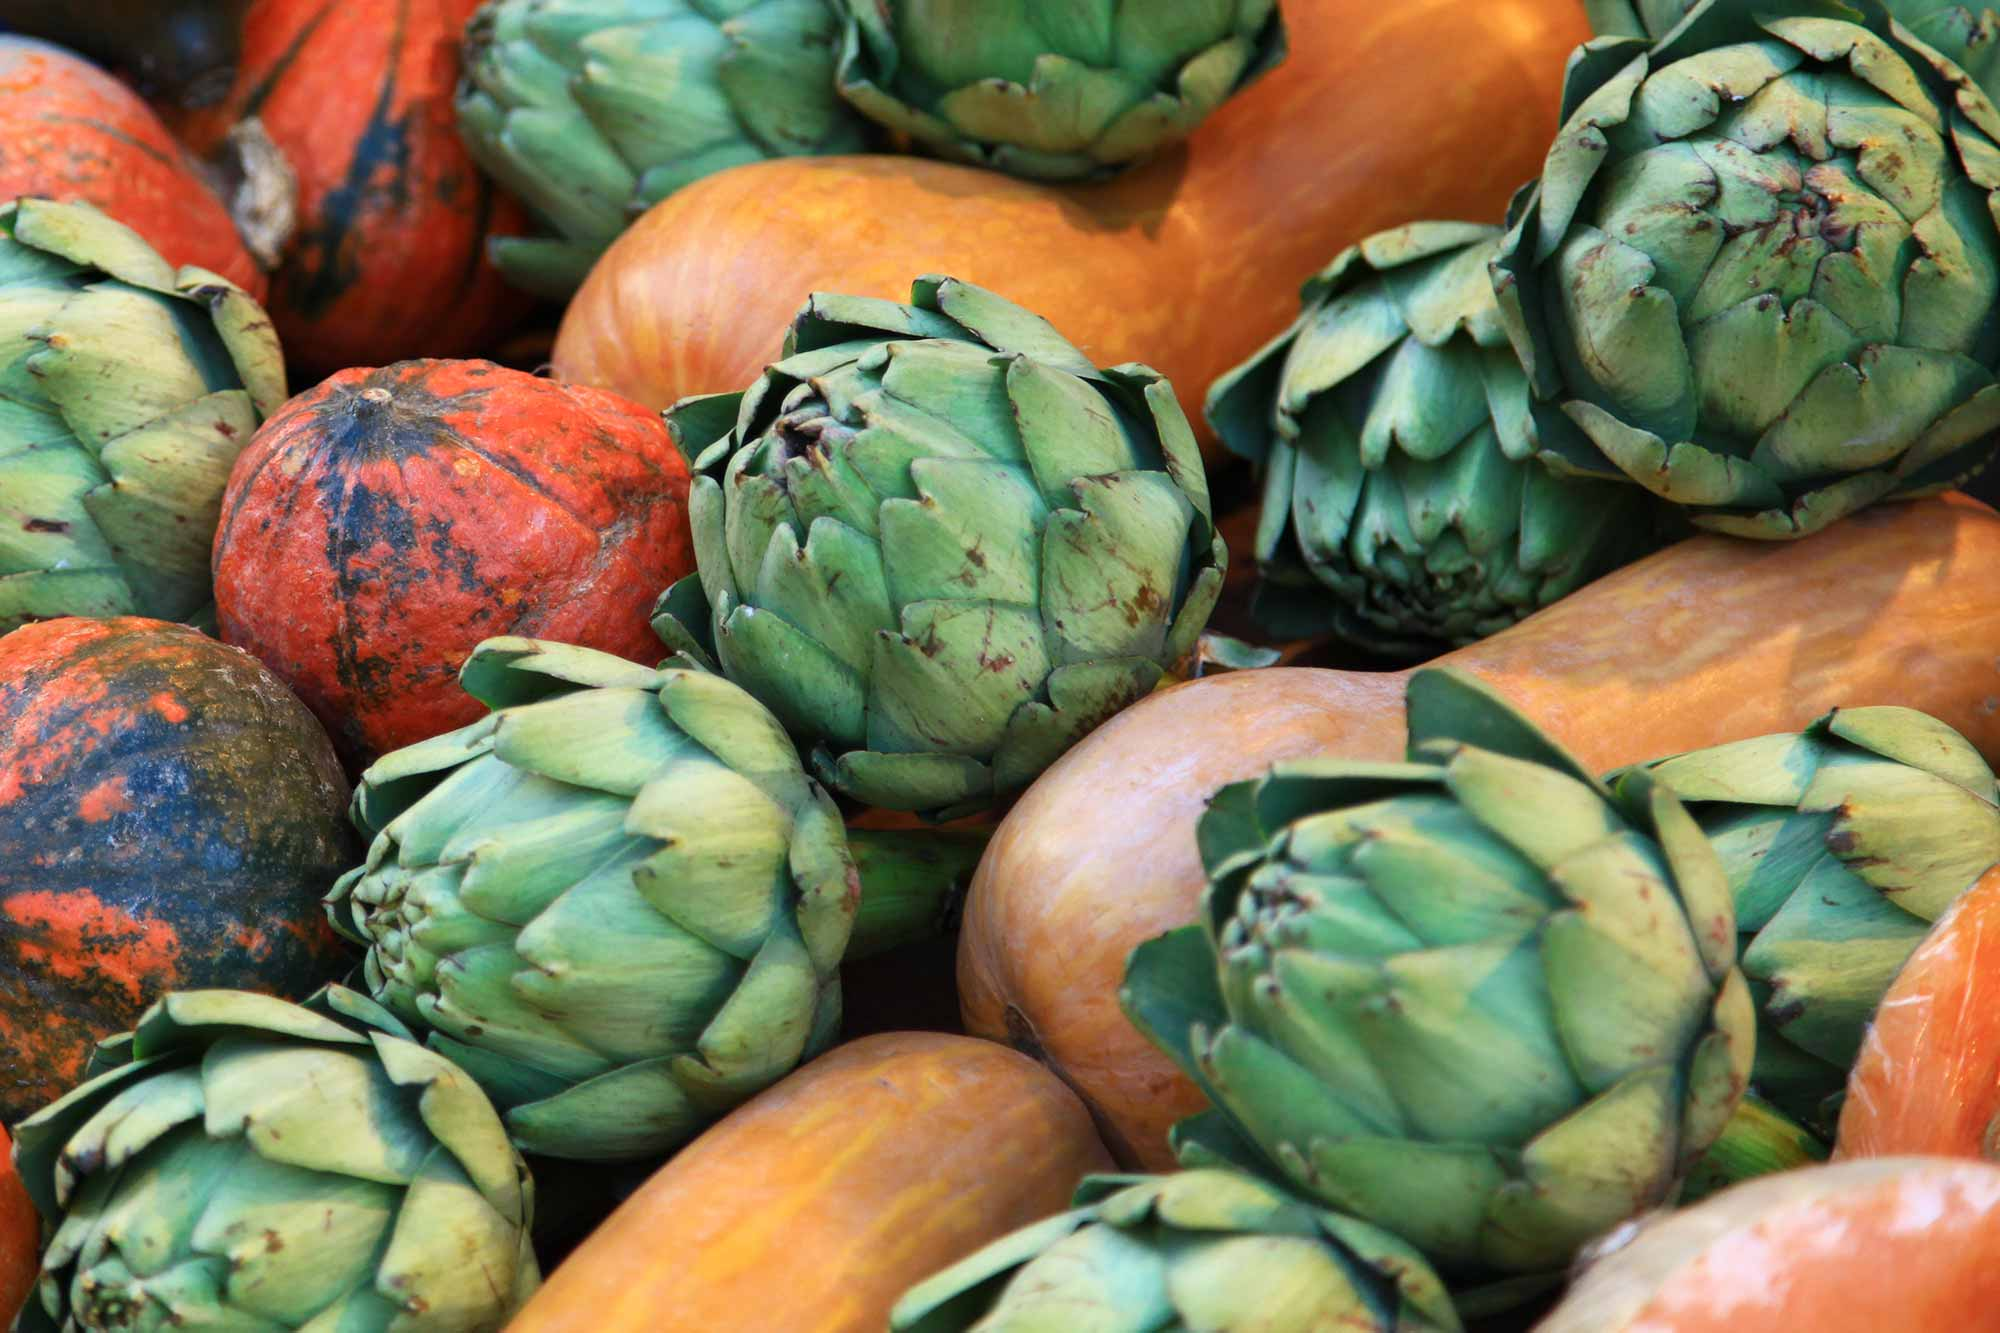 Fresh pumpkins and artichokes at Naschmarkt in Vienna, Austria. © Ulli Maier & Nisa Maier